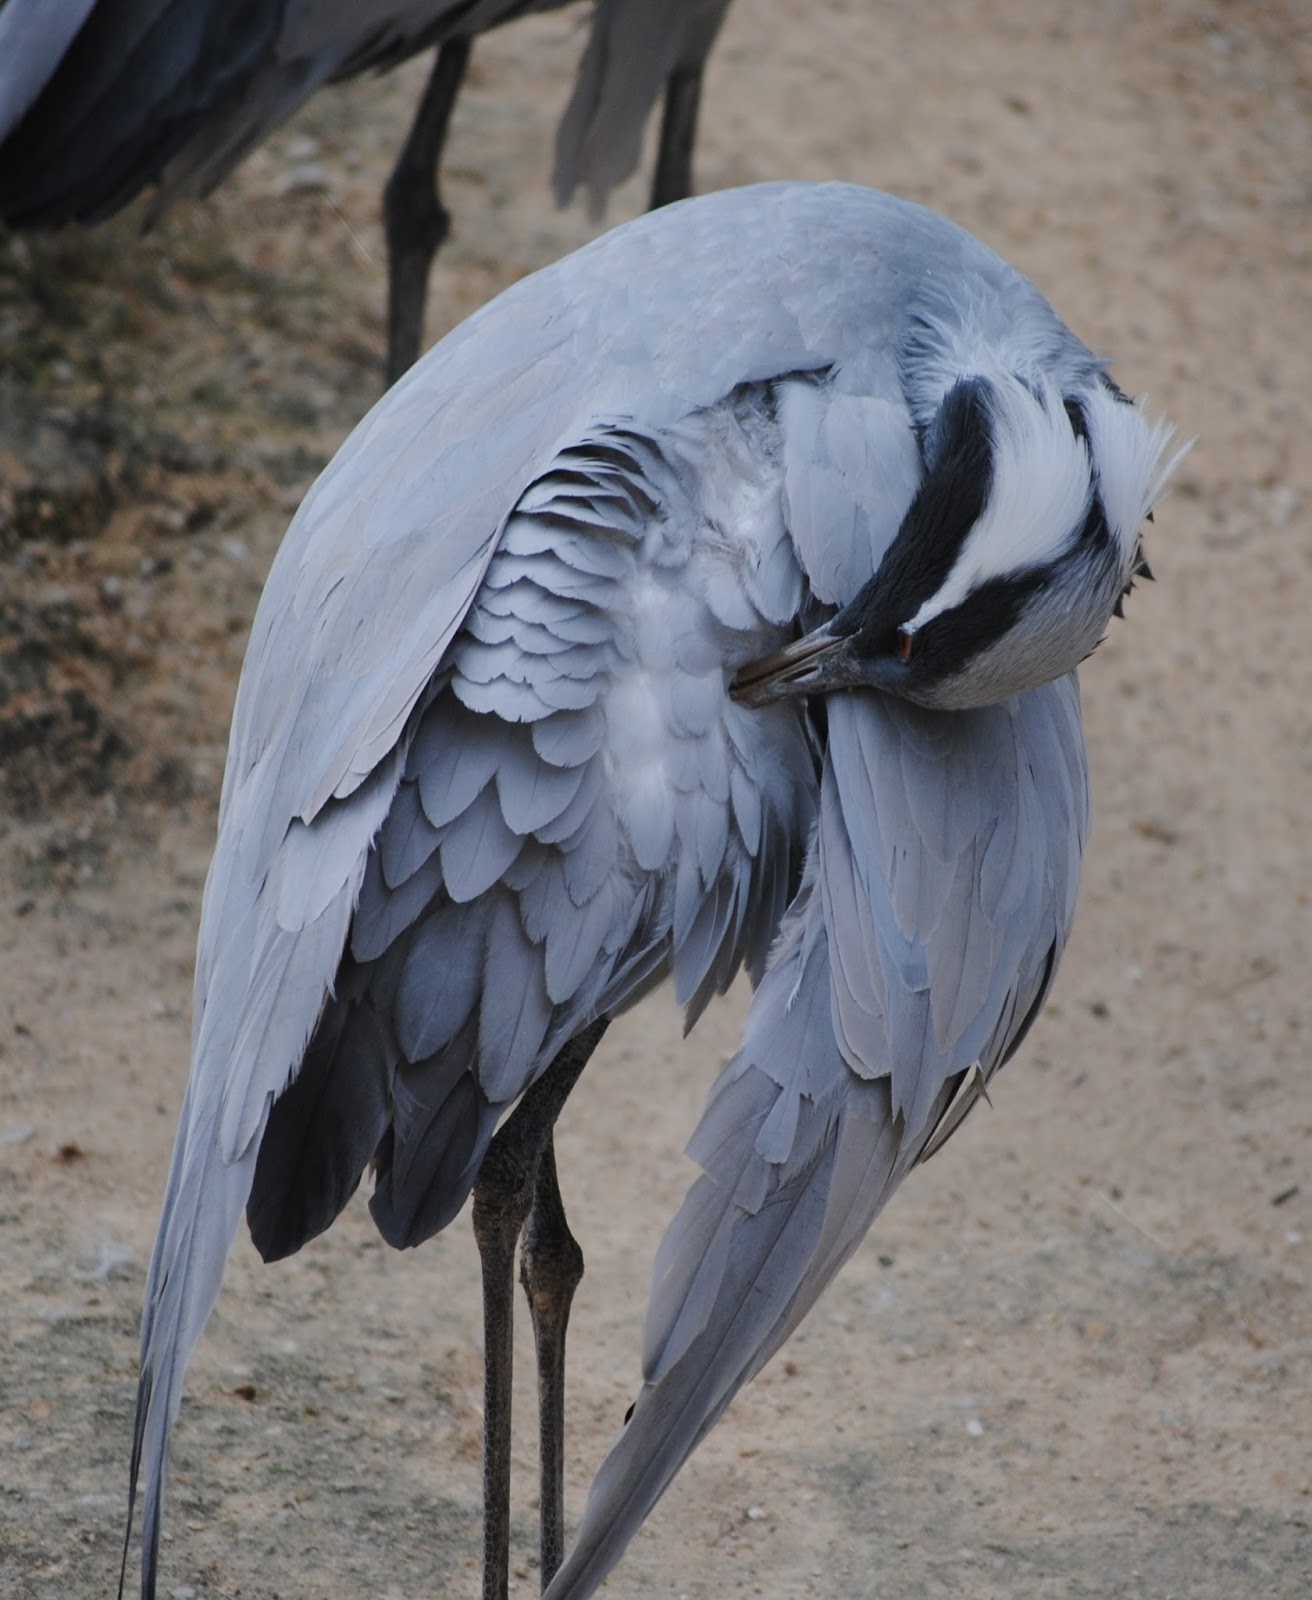 Picture of a heron preening.